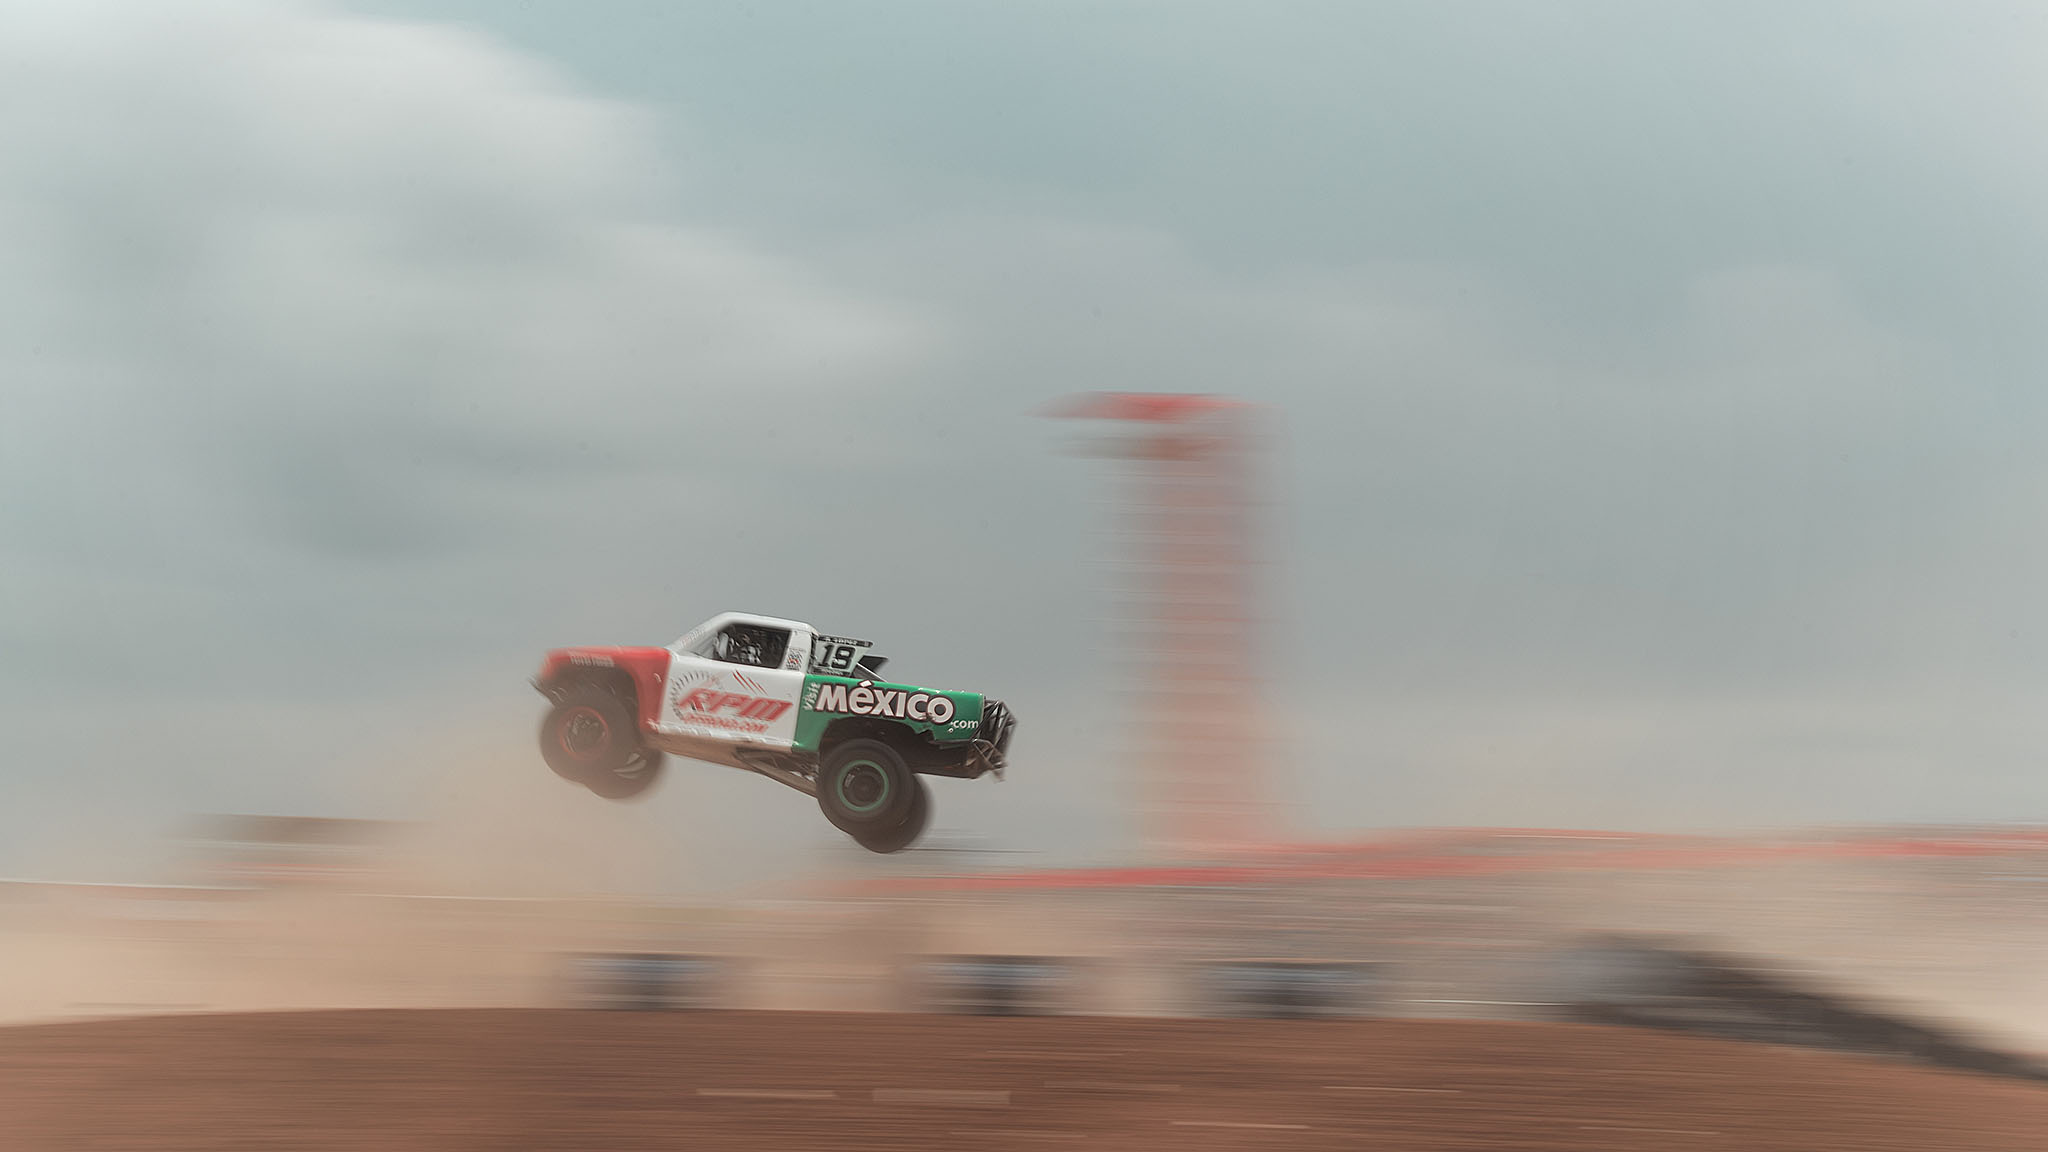 Apdaly Lopez won the X Games debut of Stadium Super Truck racing on Sunday at Circuit of the Americas, just one day after competing in the Baja 500 back home in Mexico. The win bumped him into the overall points lead in the 2014 TraxxasOff-Road Racing Championship series, ahead of Robby Gordon.